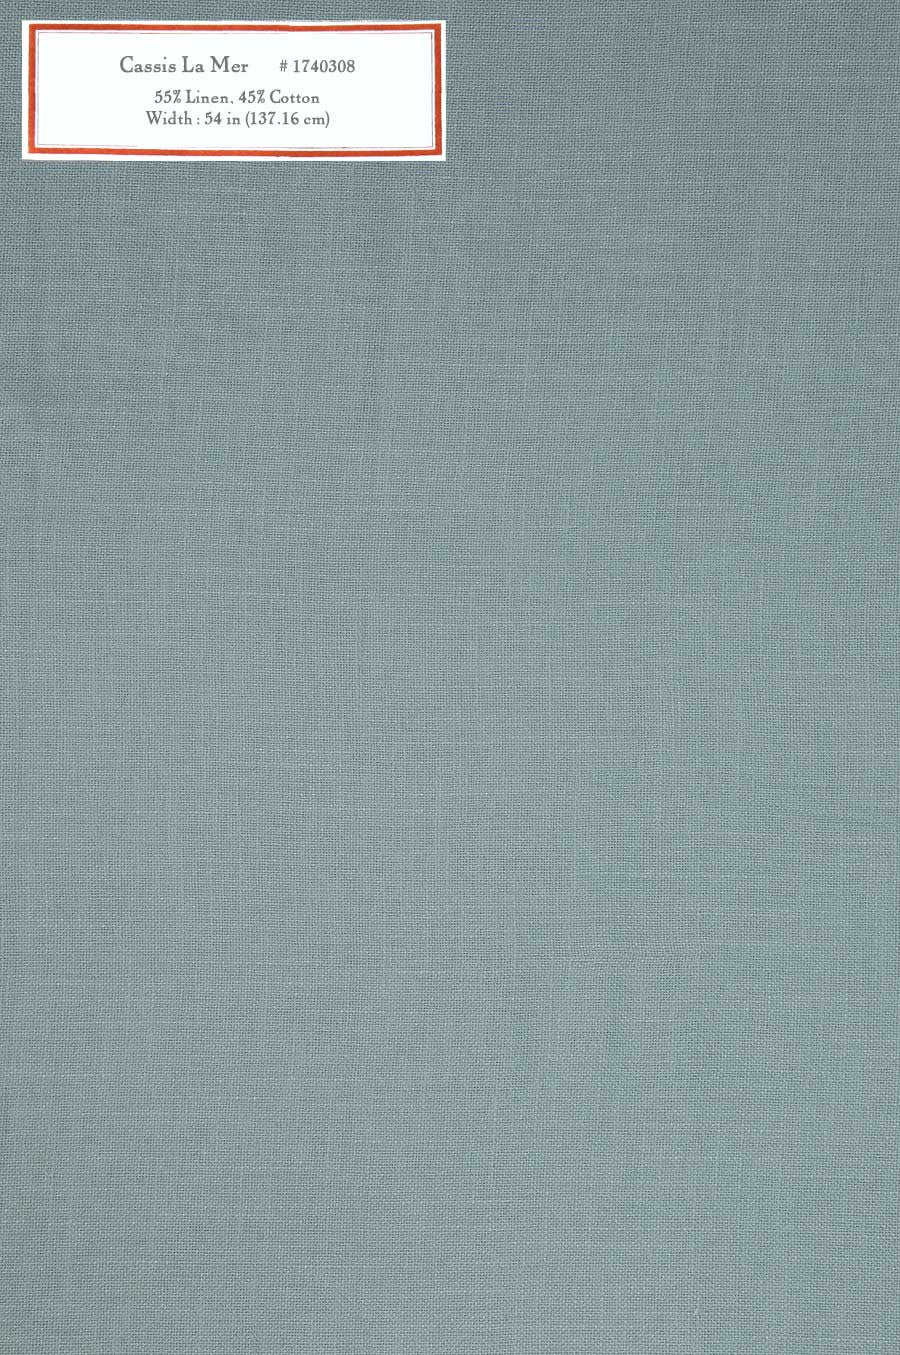 Home Decorative Fabric - Cassis La Mer